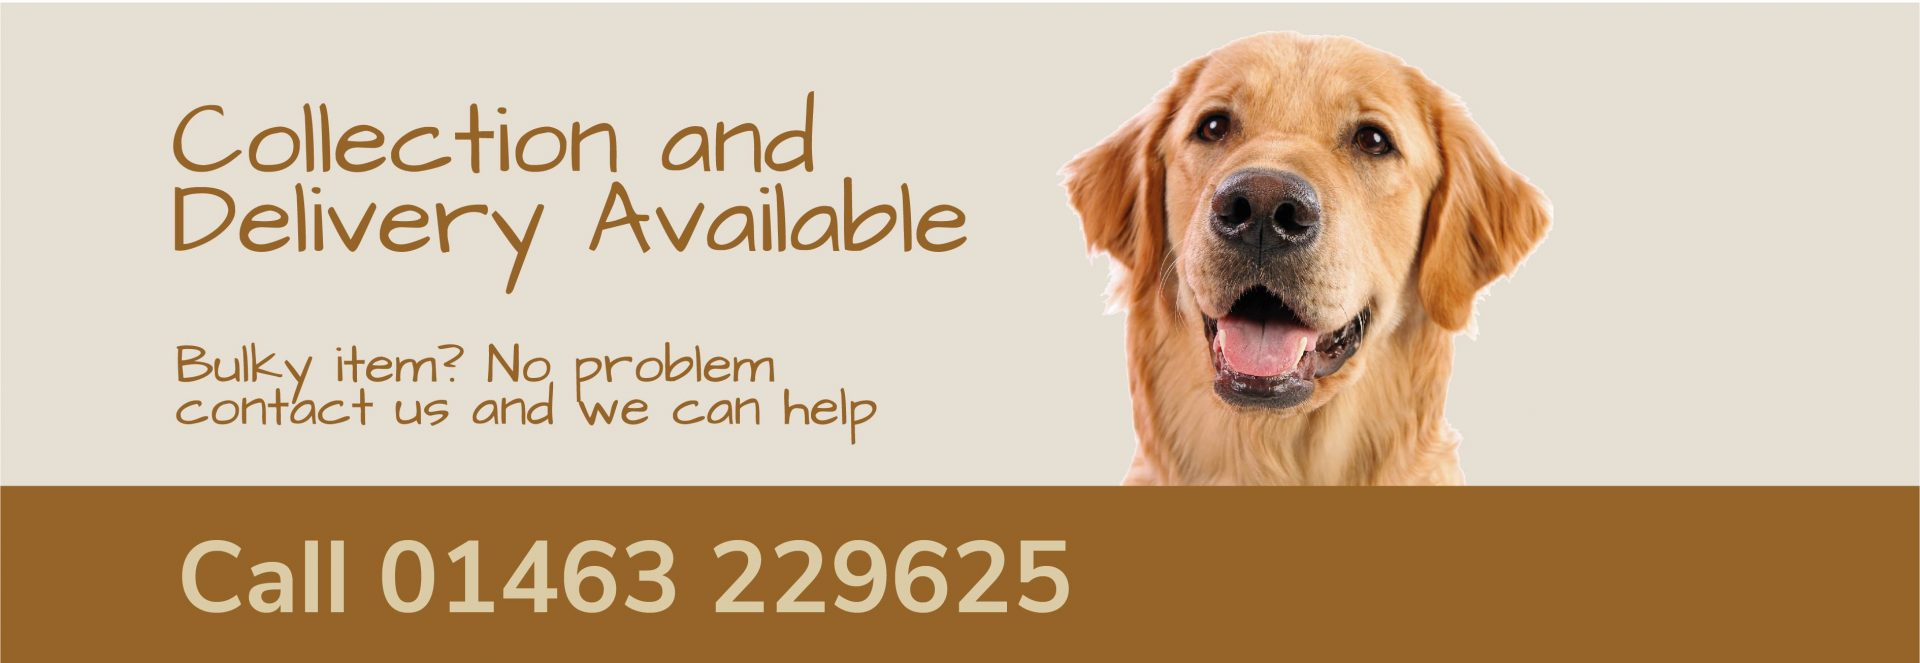 dog banner collection devliery